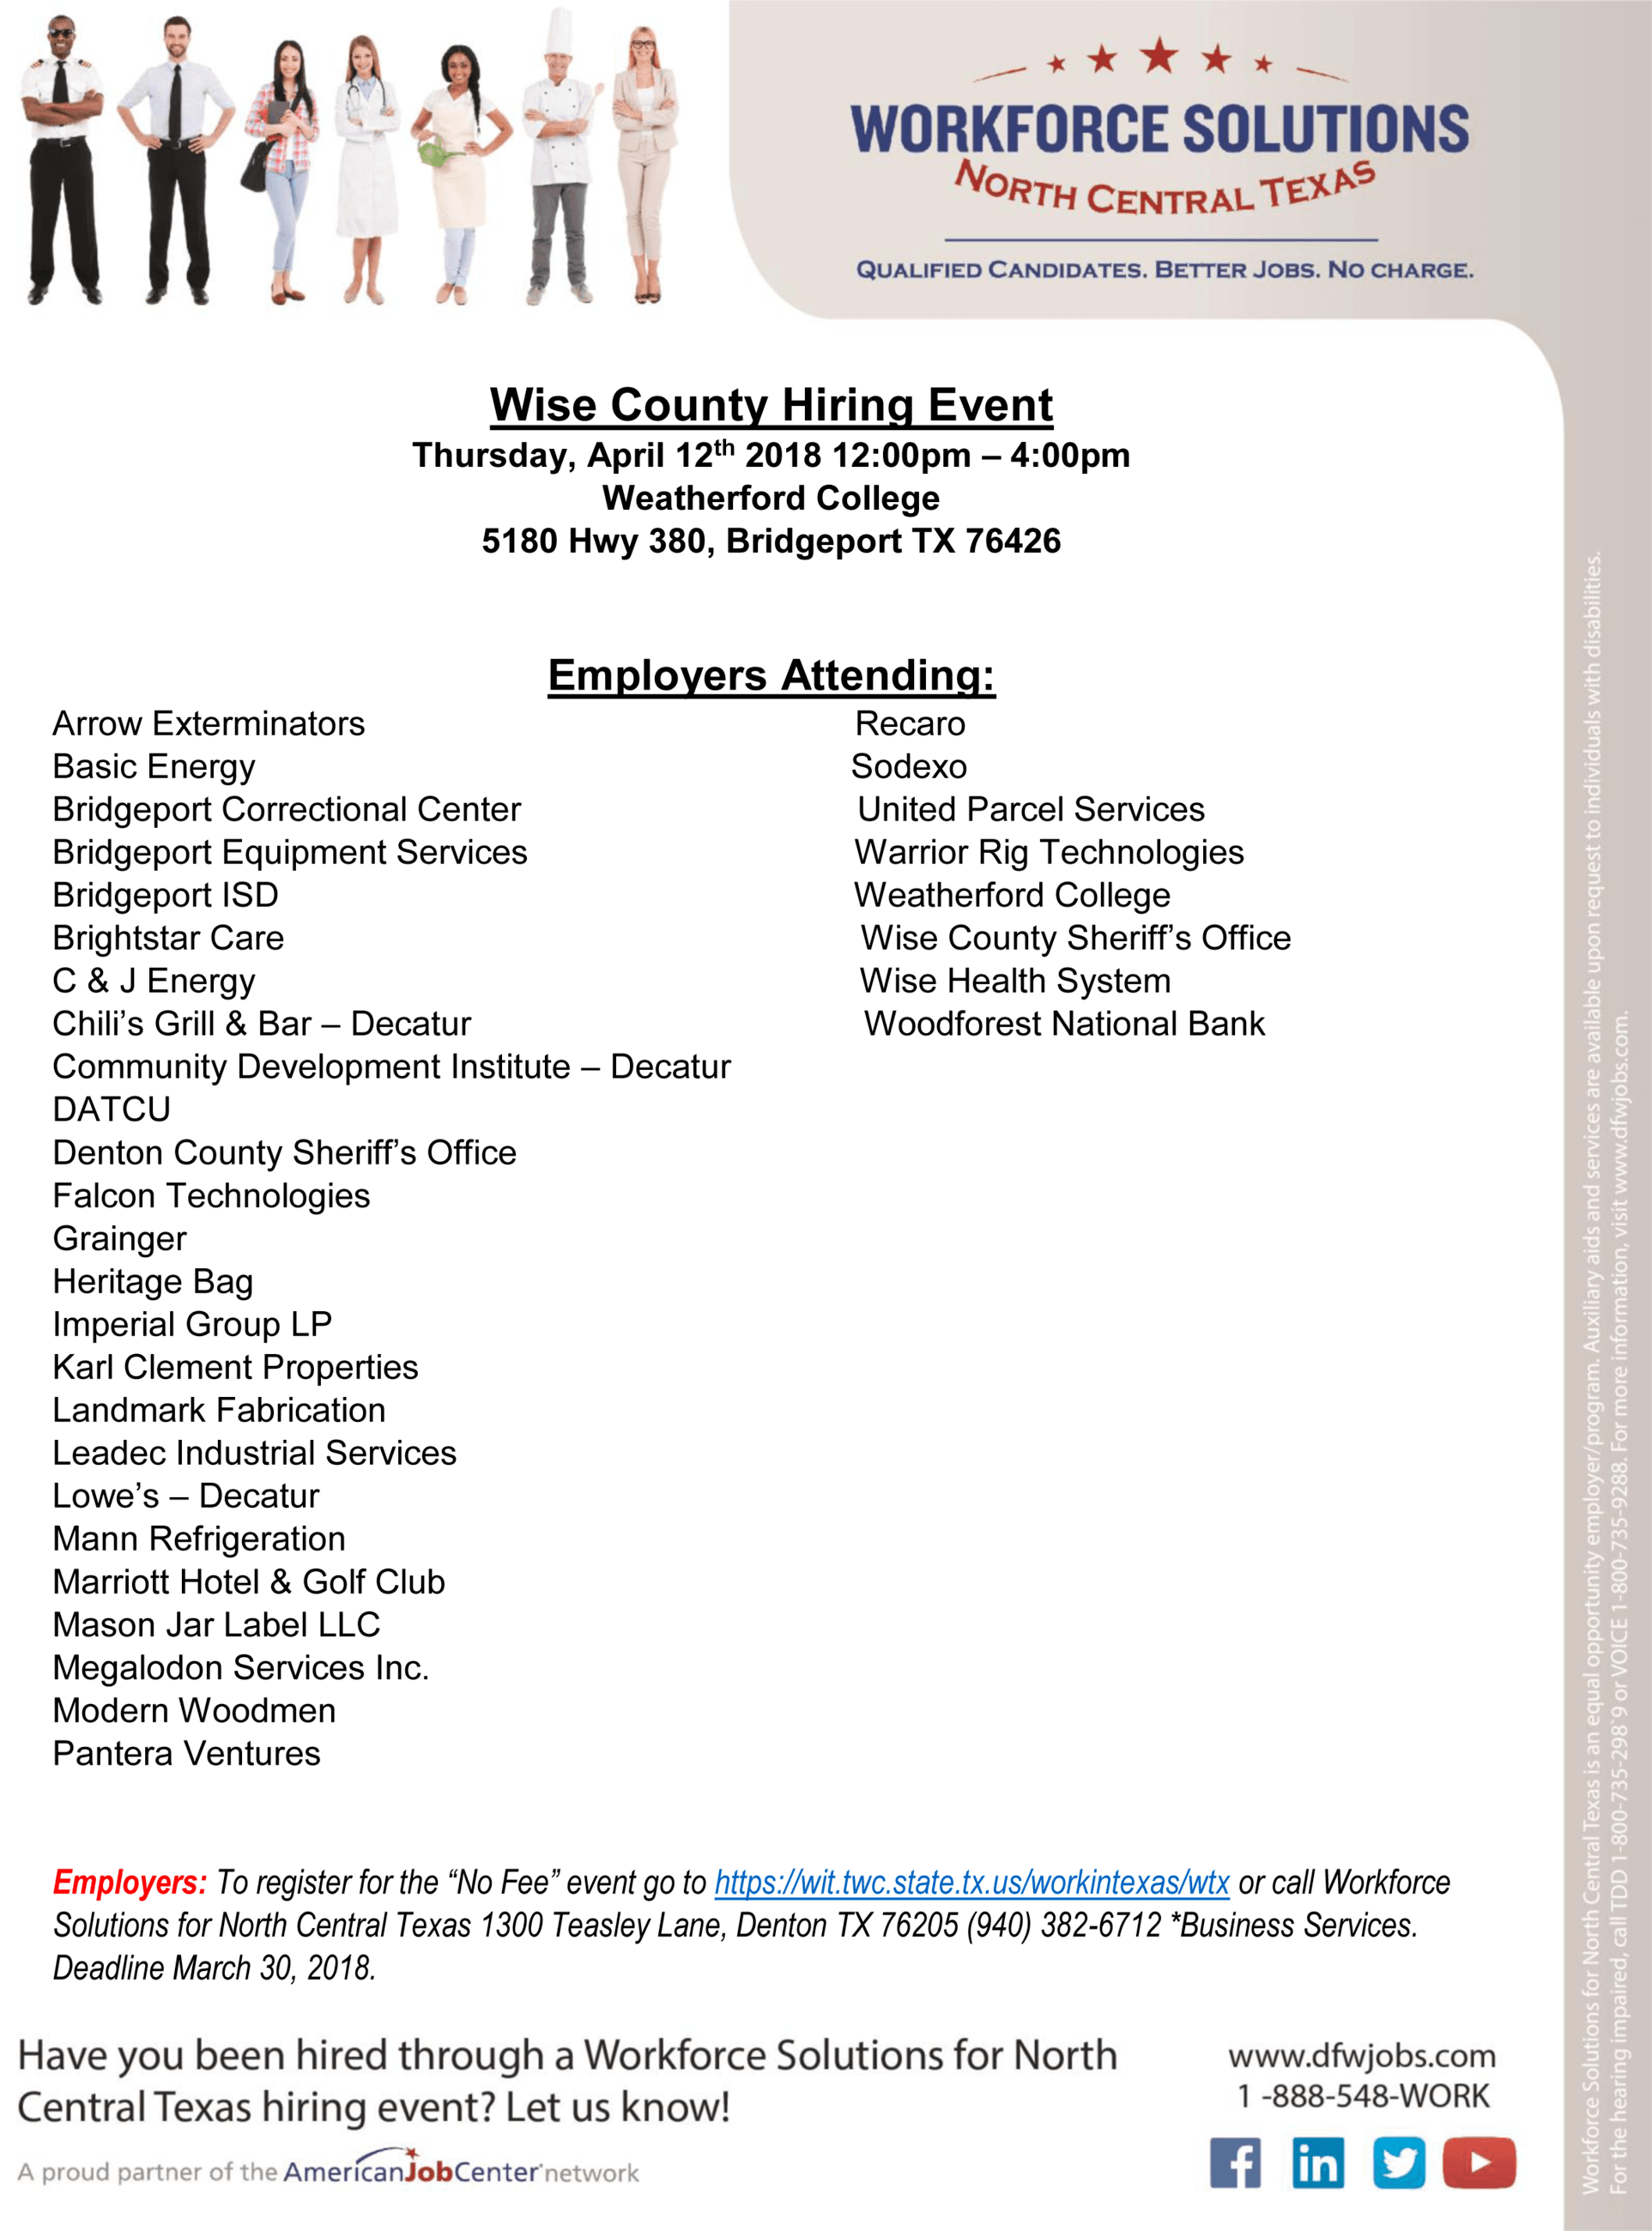 Wise County Hiring Event 2